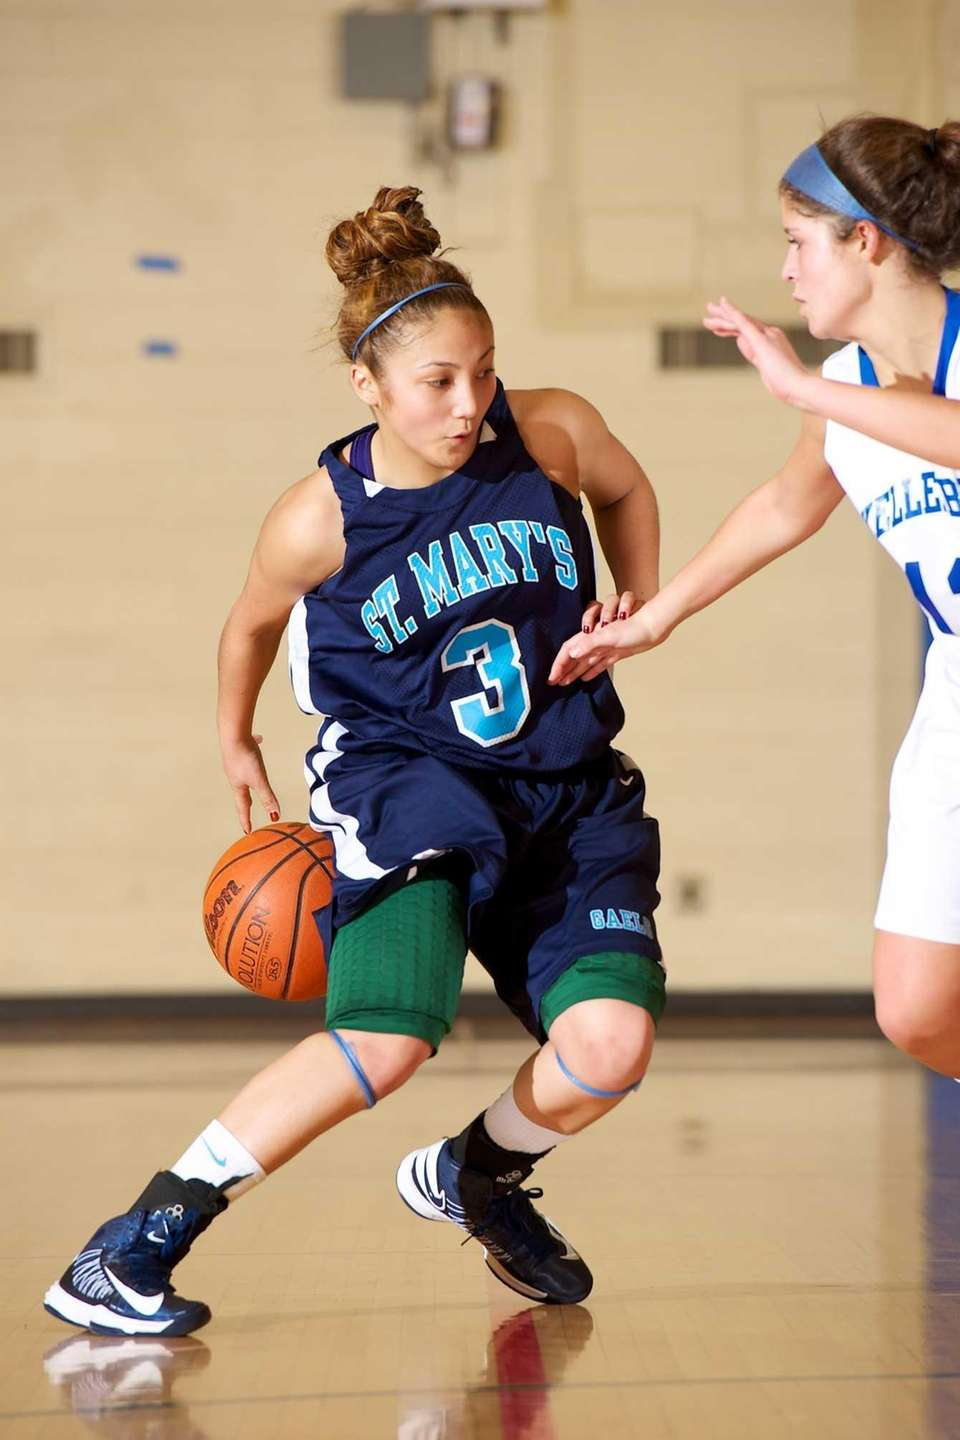 St. Marys guard Mei-Lyn Bautista attempts to dribble